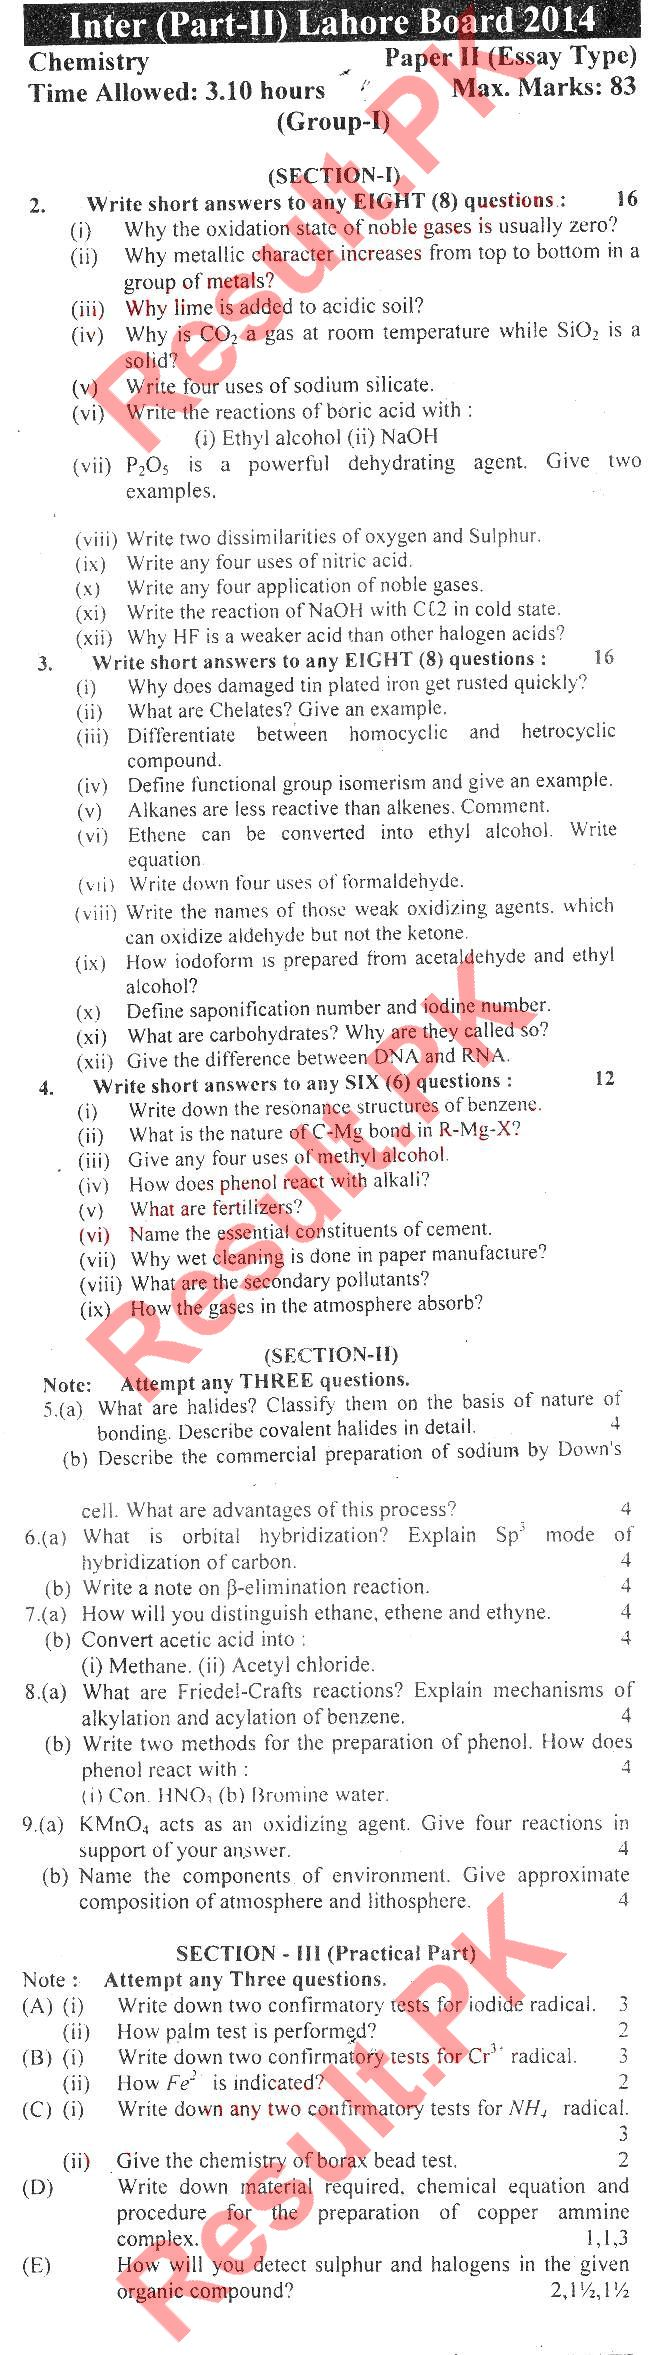 intermediate 2 past papers chemistry